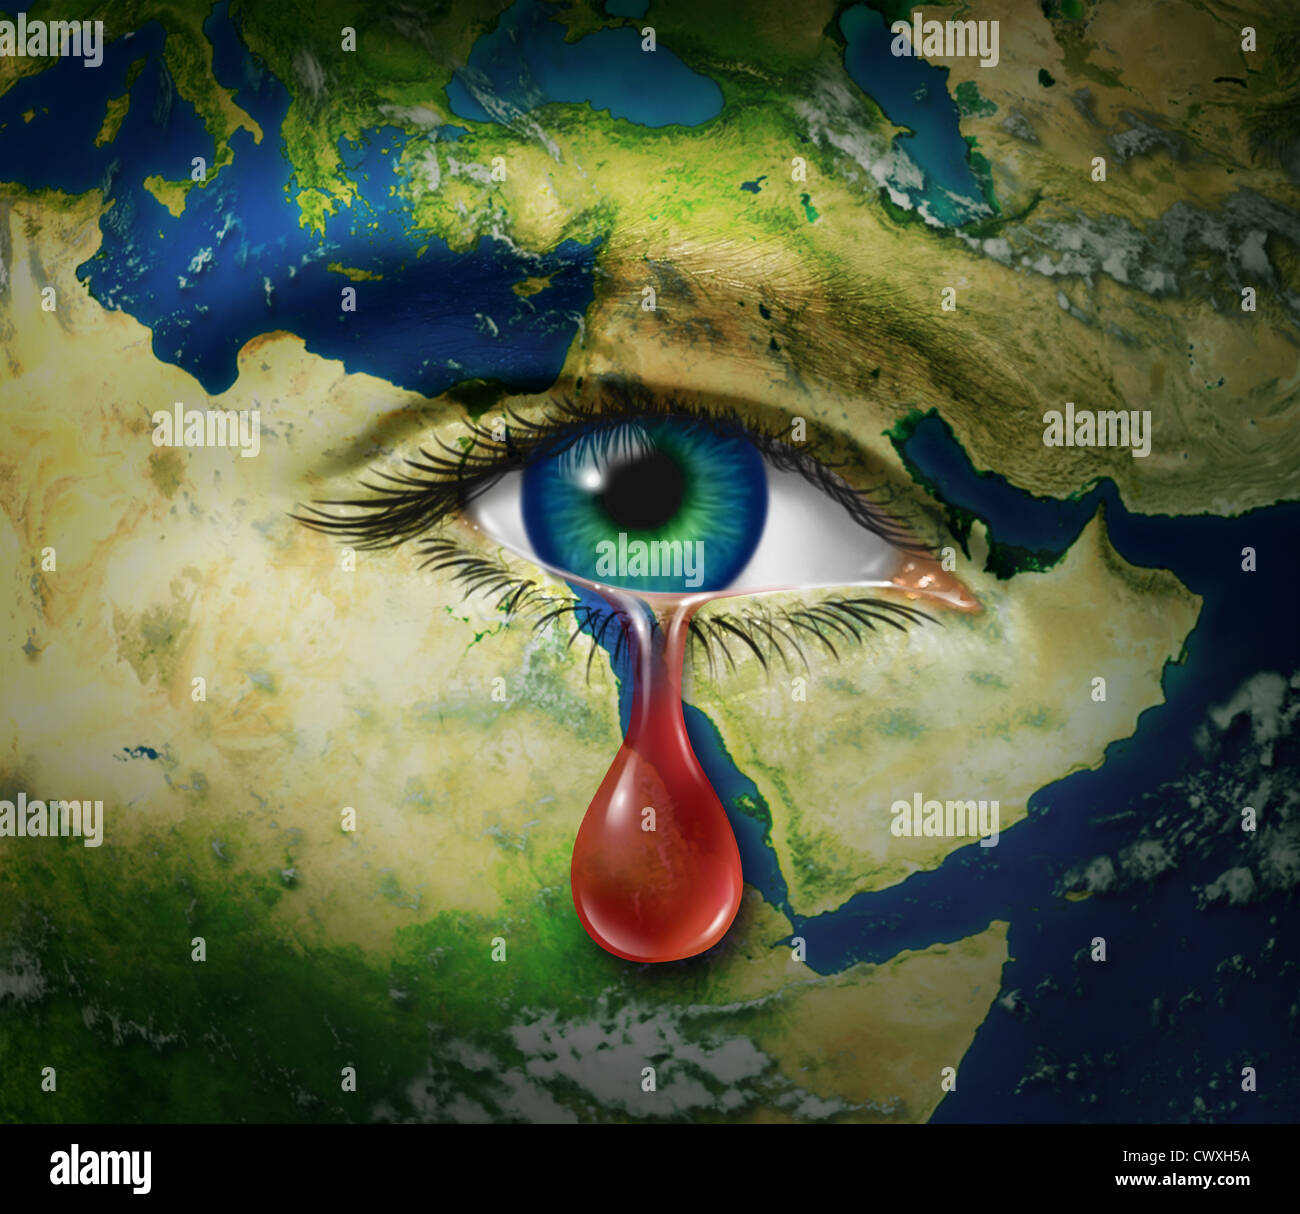 Violence in the middle east as a map of countries as egypt syria violence in the middle east as a map of countries as egypt syria iran israel saudi arabia libya yemen iraq with an eye that is crying a red tear of blood as gumiabroncs